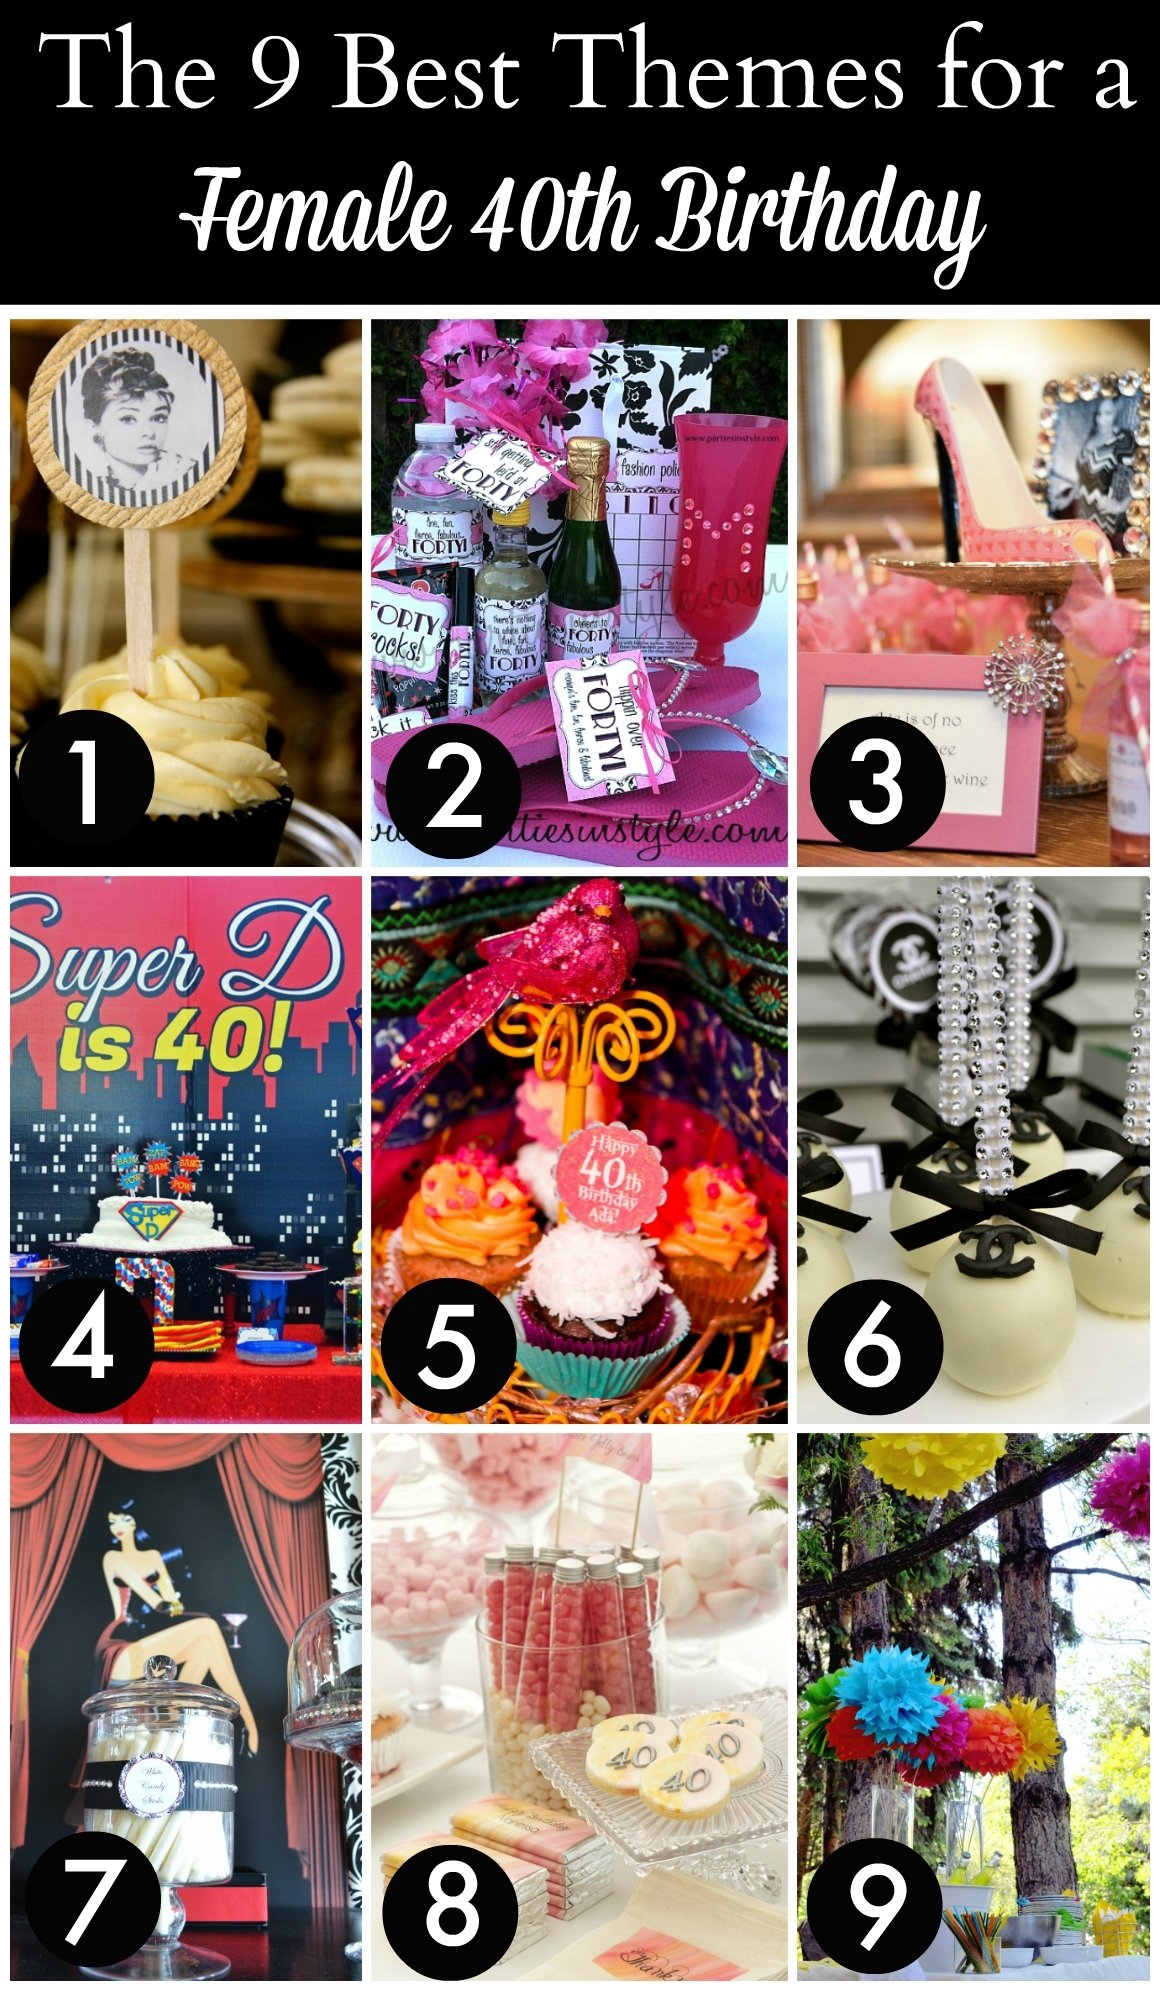 10 Most Popular Ideas For A 40Th Birthday Party the 12 best 40th birthday themes for women catch my party 5 2020